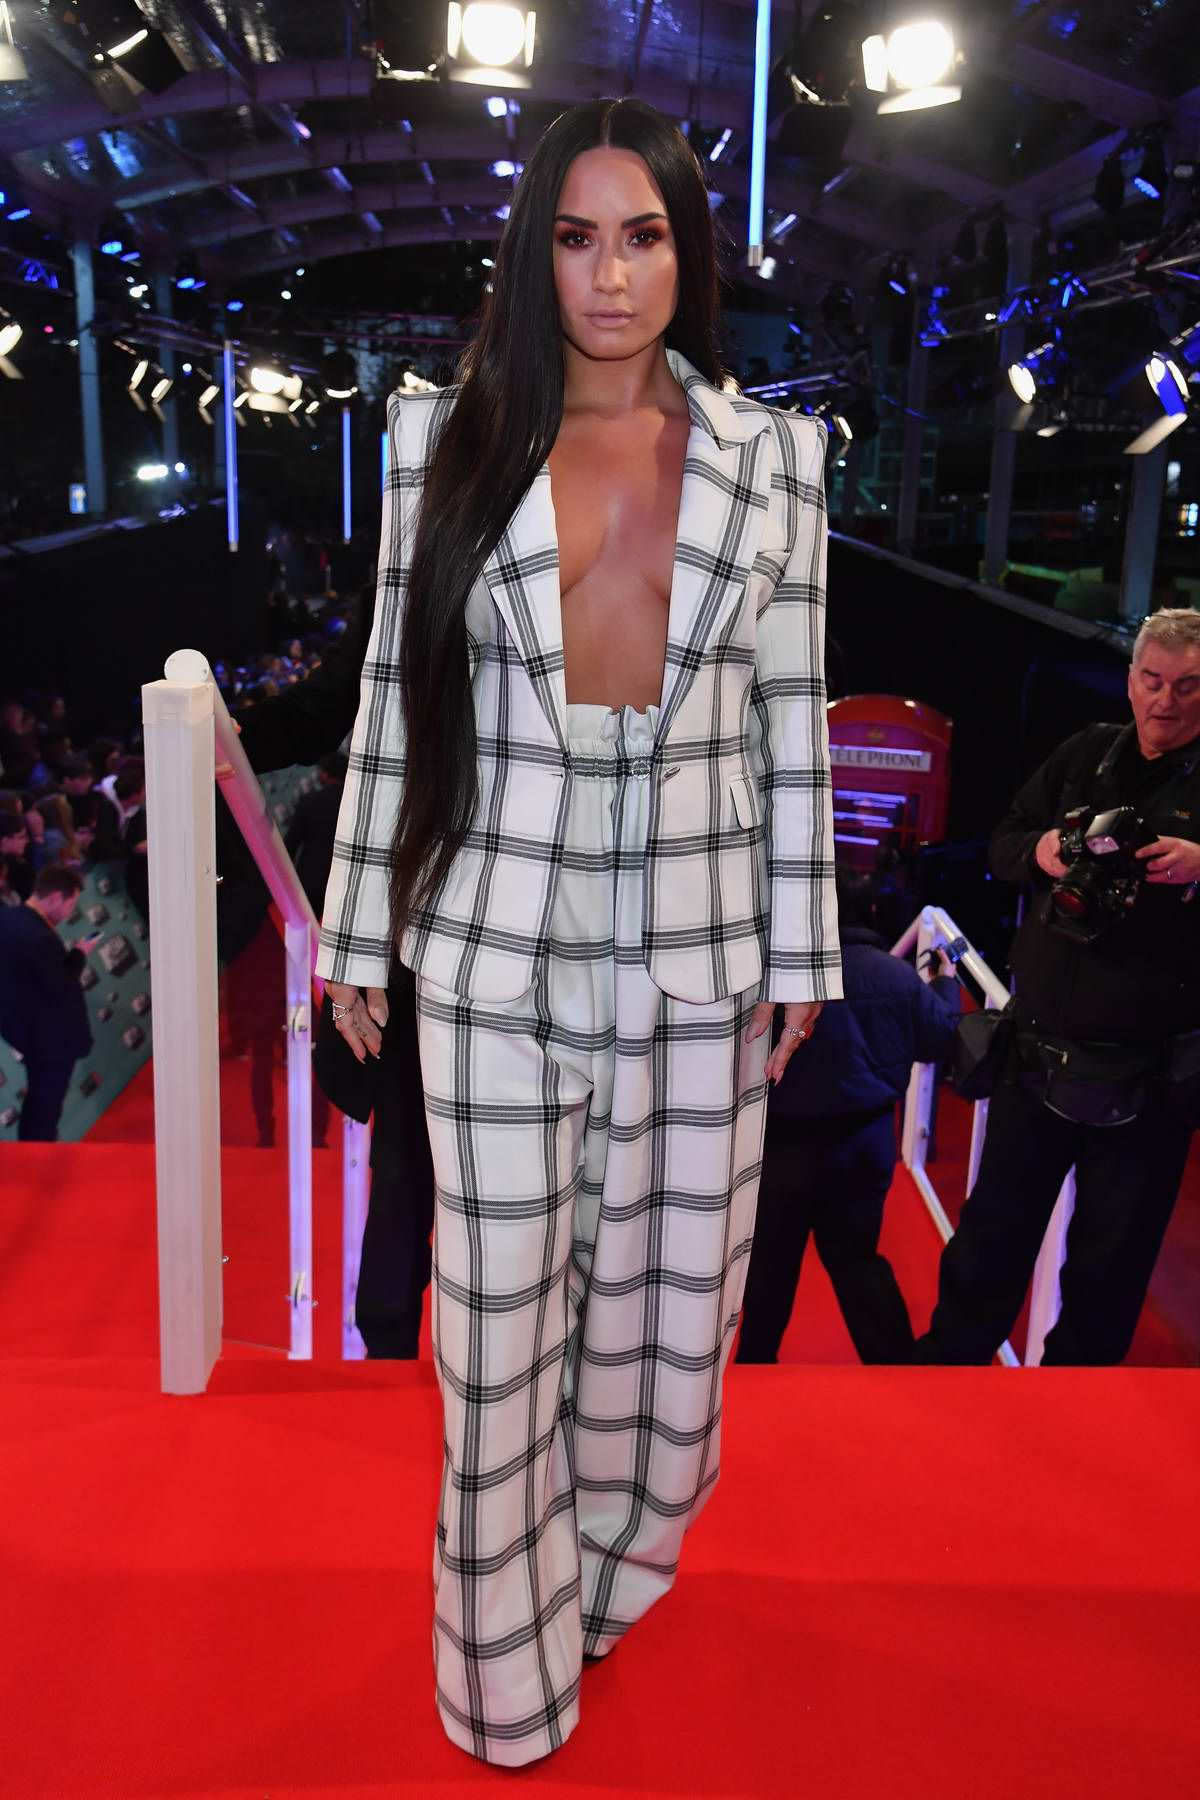 Demi Lovato at the 24th MTV Europe Music Awards held at SSE Arena Wembley in London